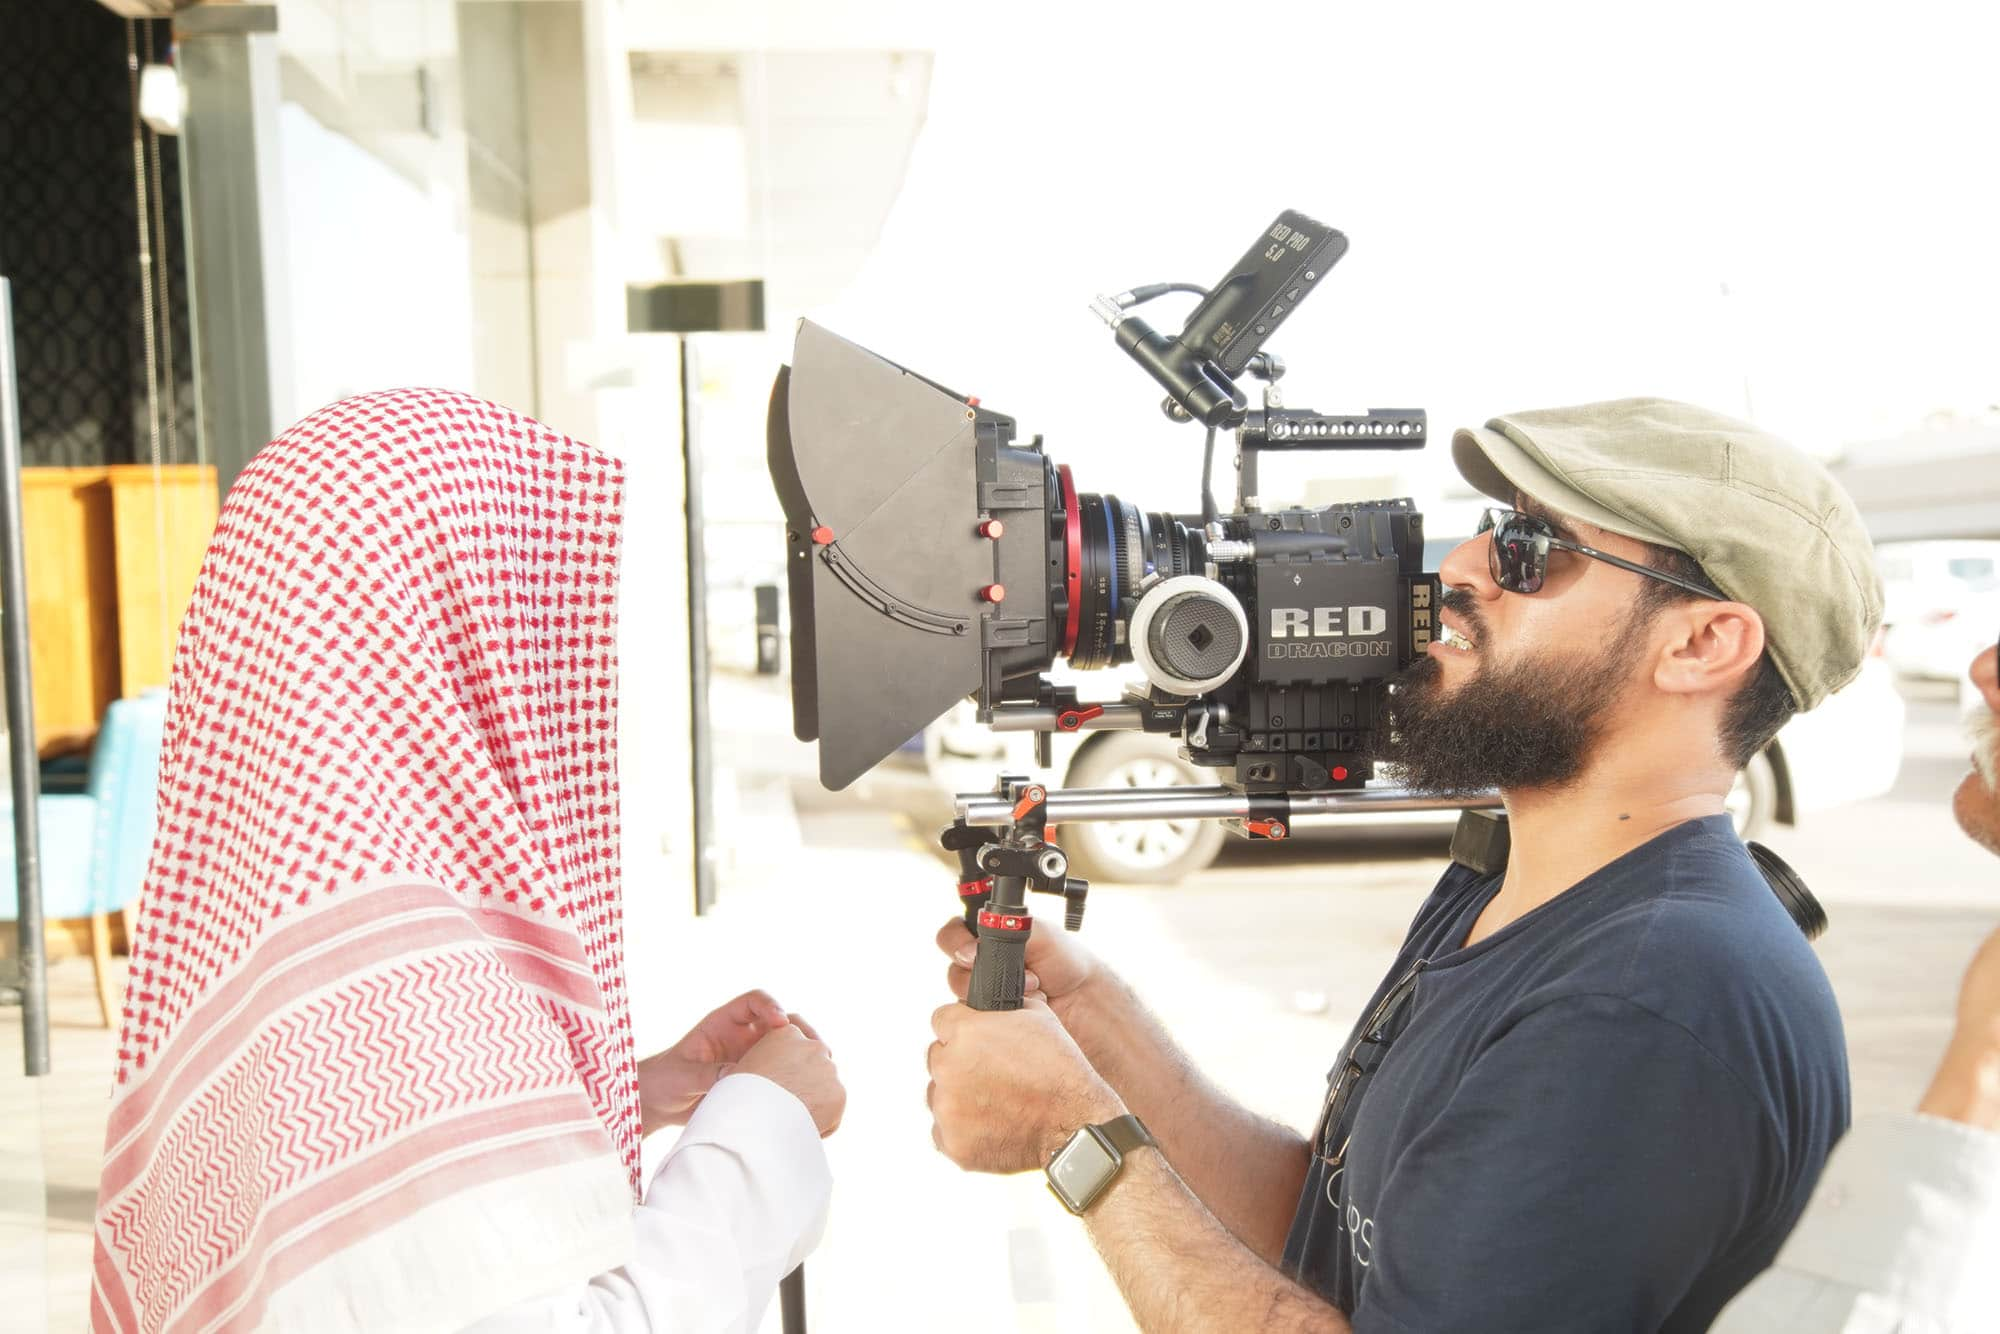 Saudi Arabia Film Production Company - 2018-08-01-FCF-twoLifes_DSC09602